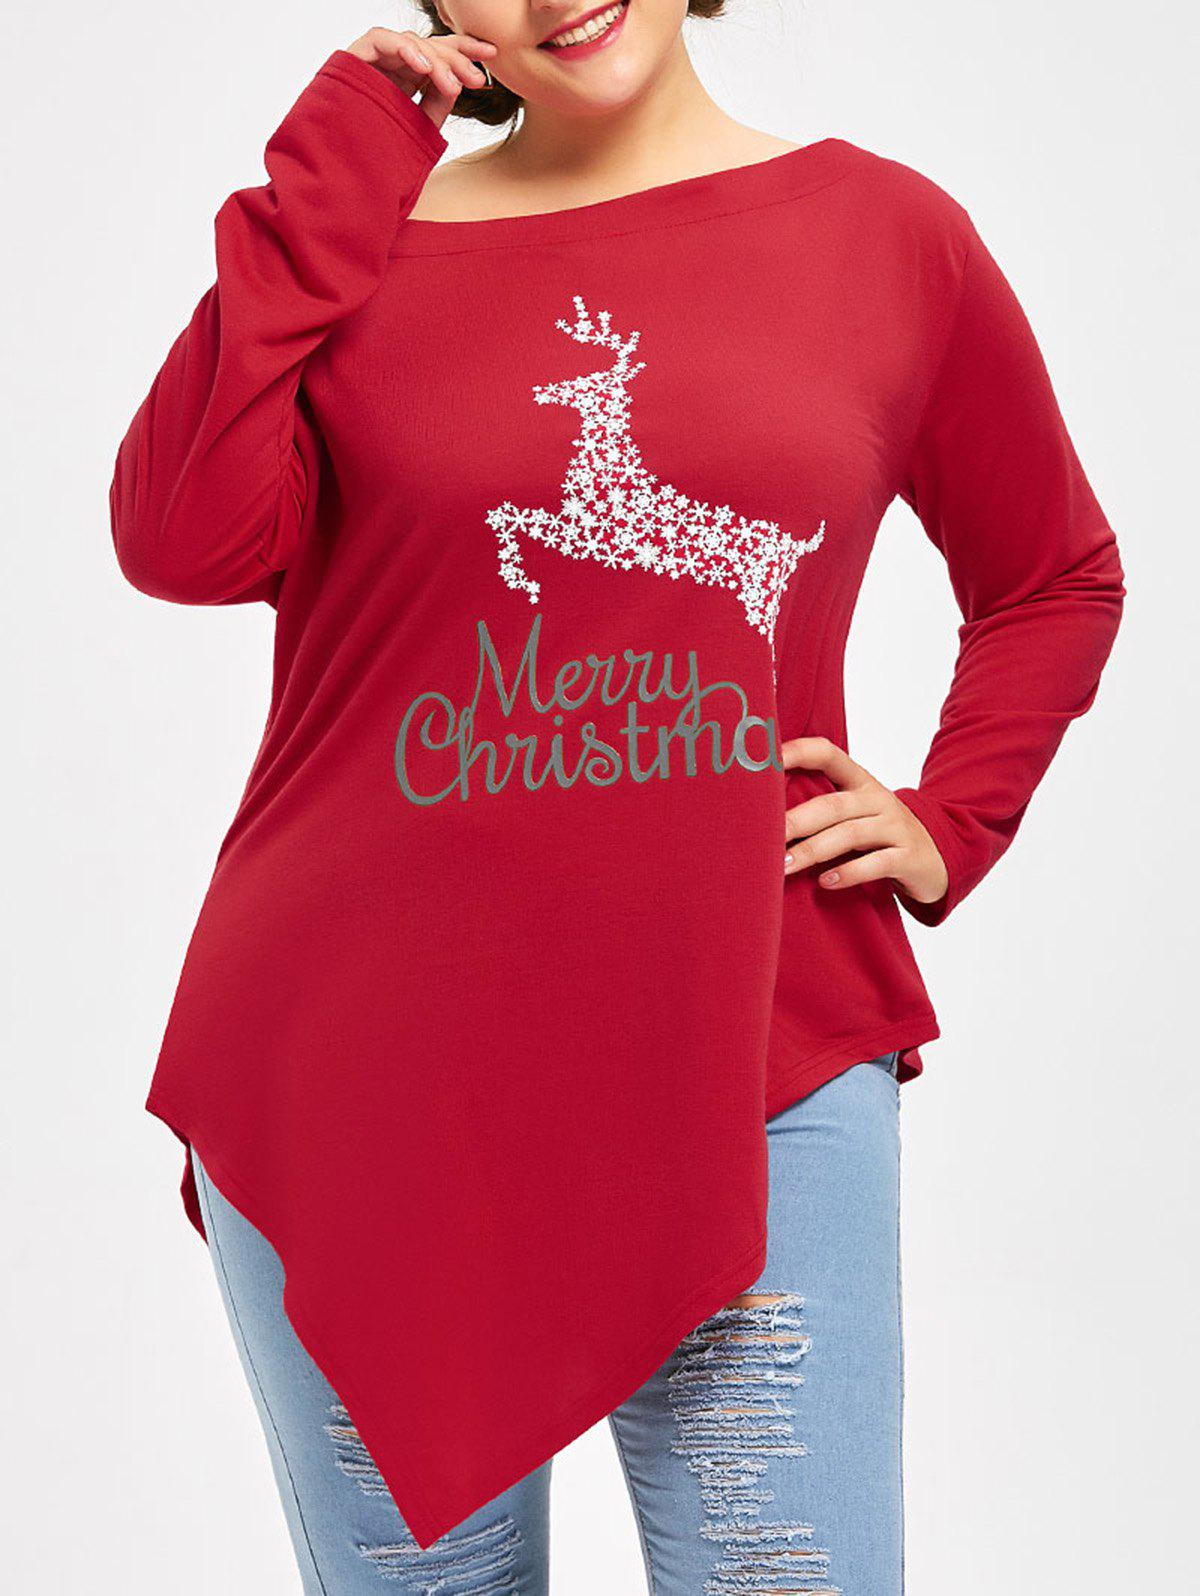 5a0f25eb2 34% OFF] Plus Size Merry Christmas Deer Graphic T-shirt | Rosegal